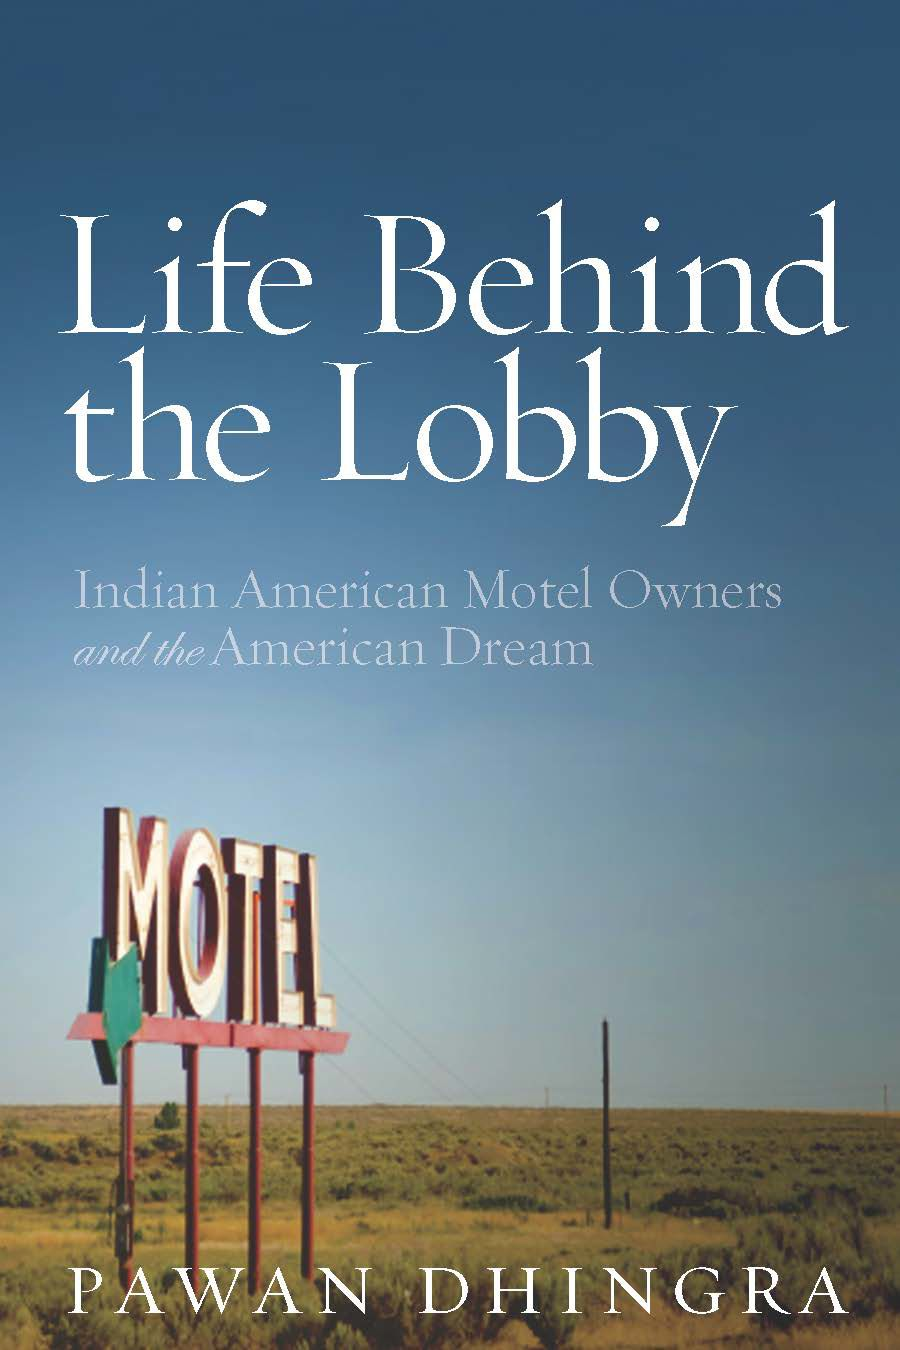 Housekeeping: The changing face of 'Patel Motel' in America